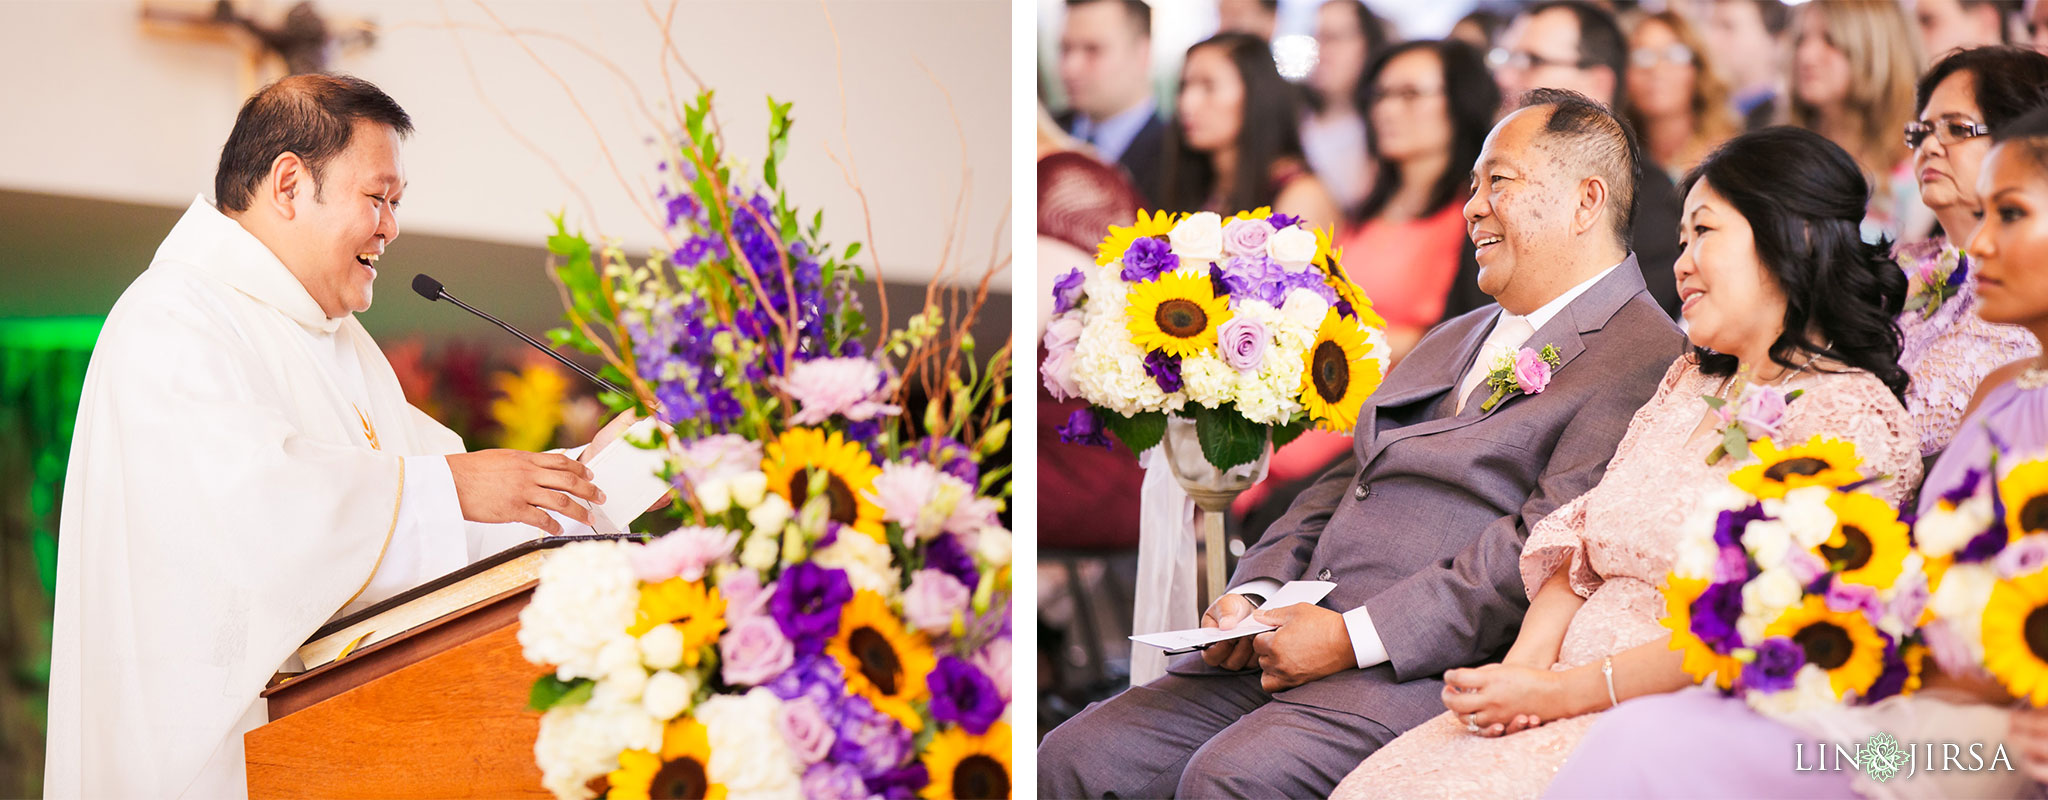 015 christ cathedral garden grove wedding ceremony photography